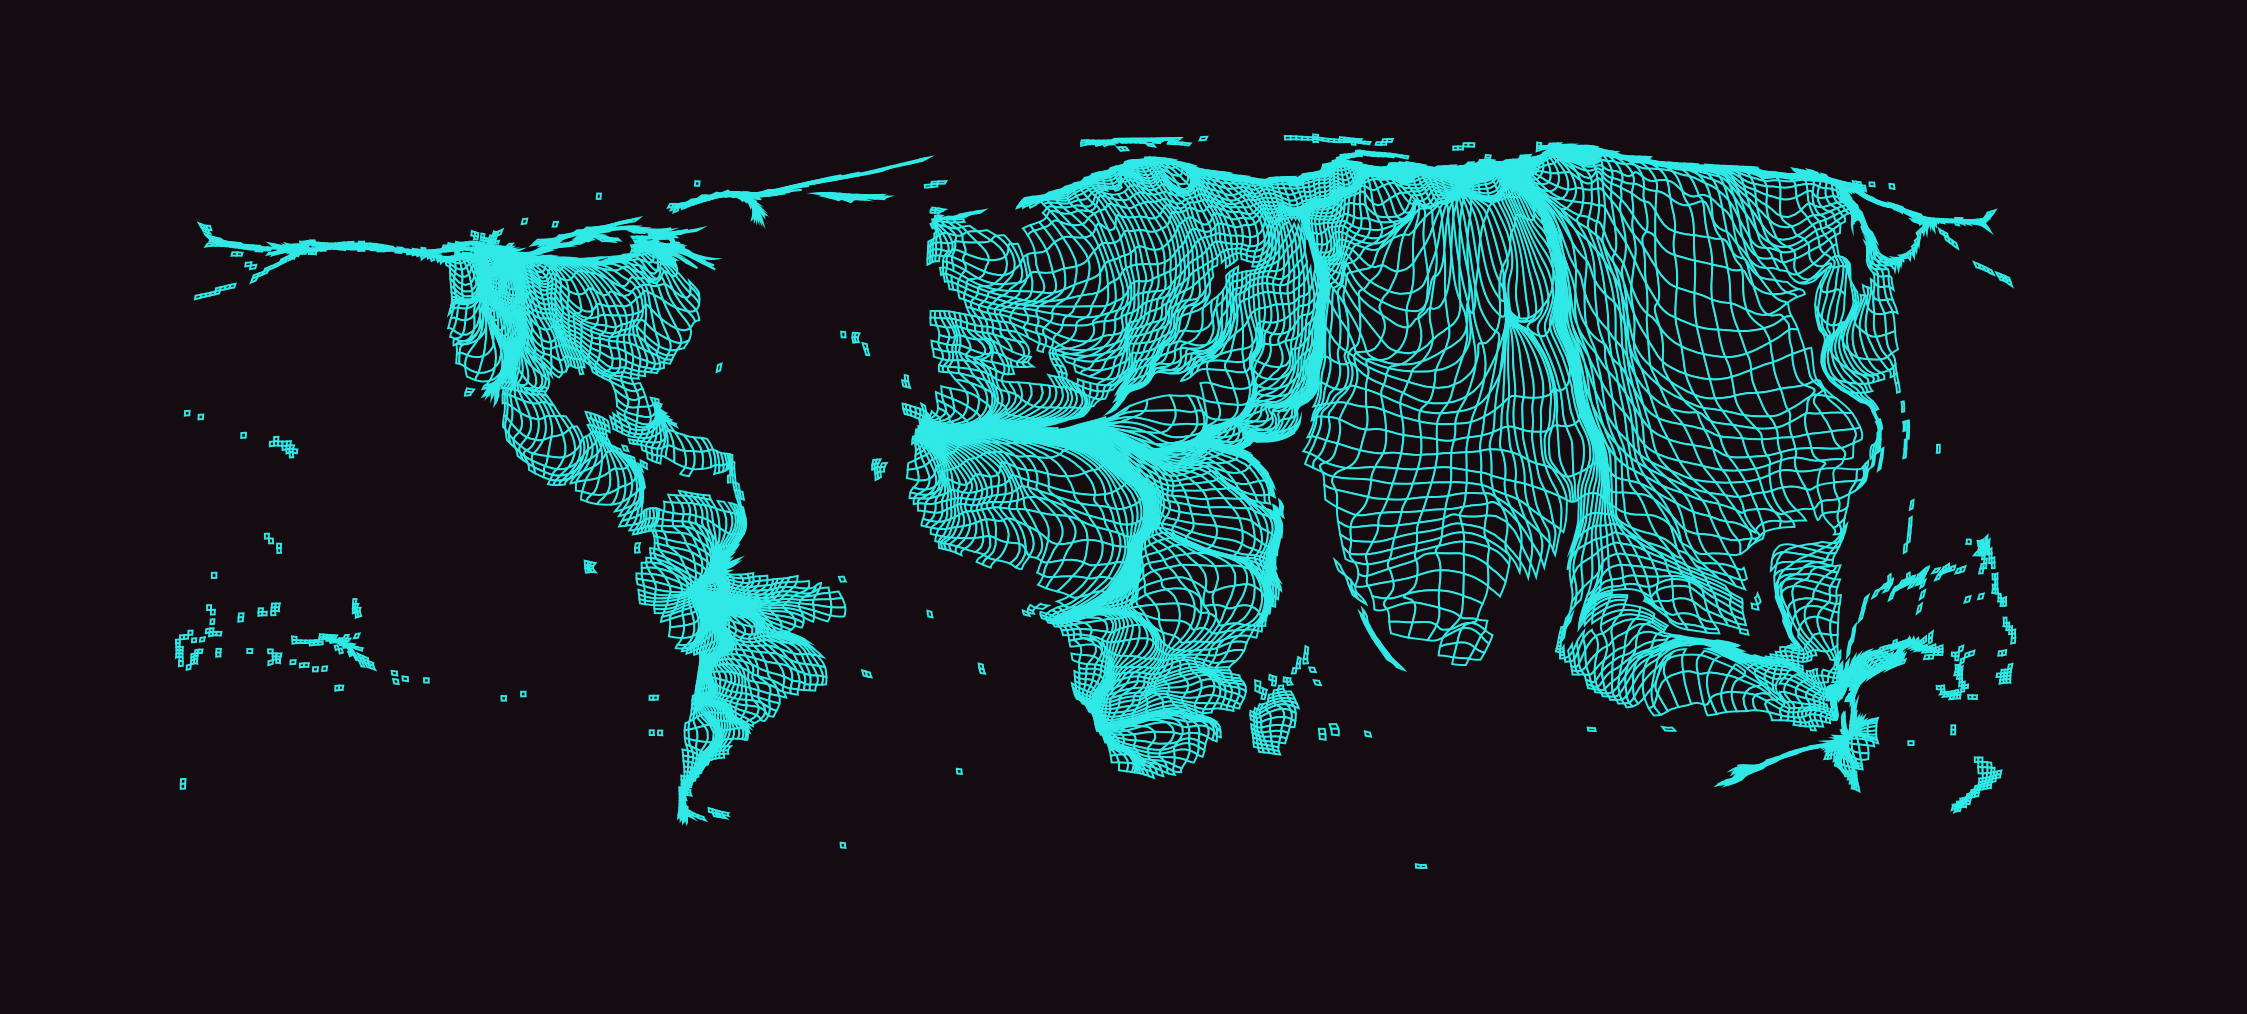 Mapping the Real World - Towards Data Science